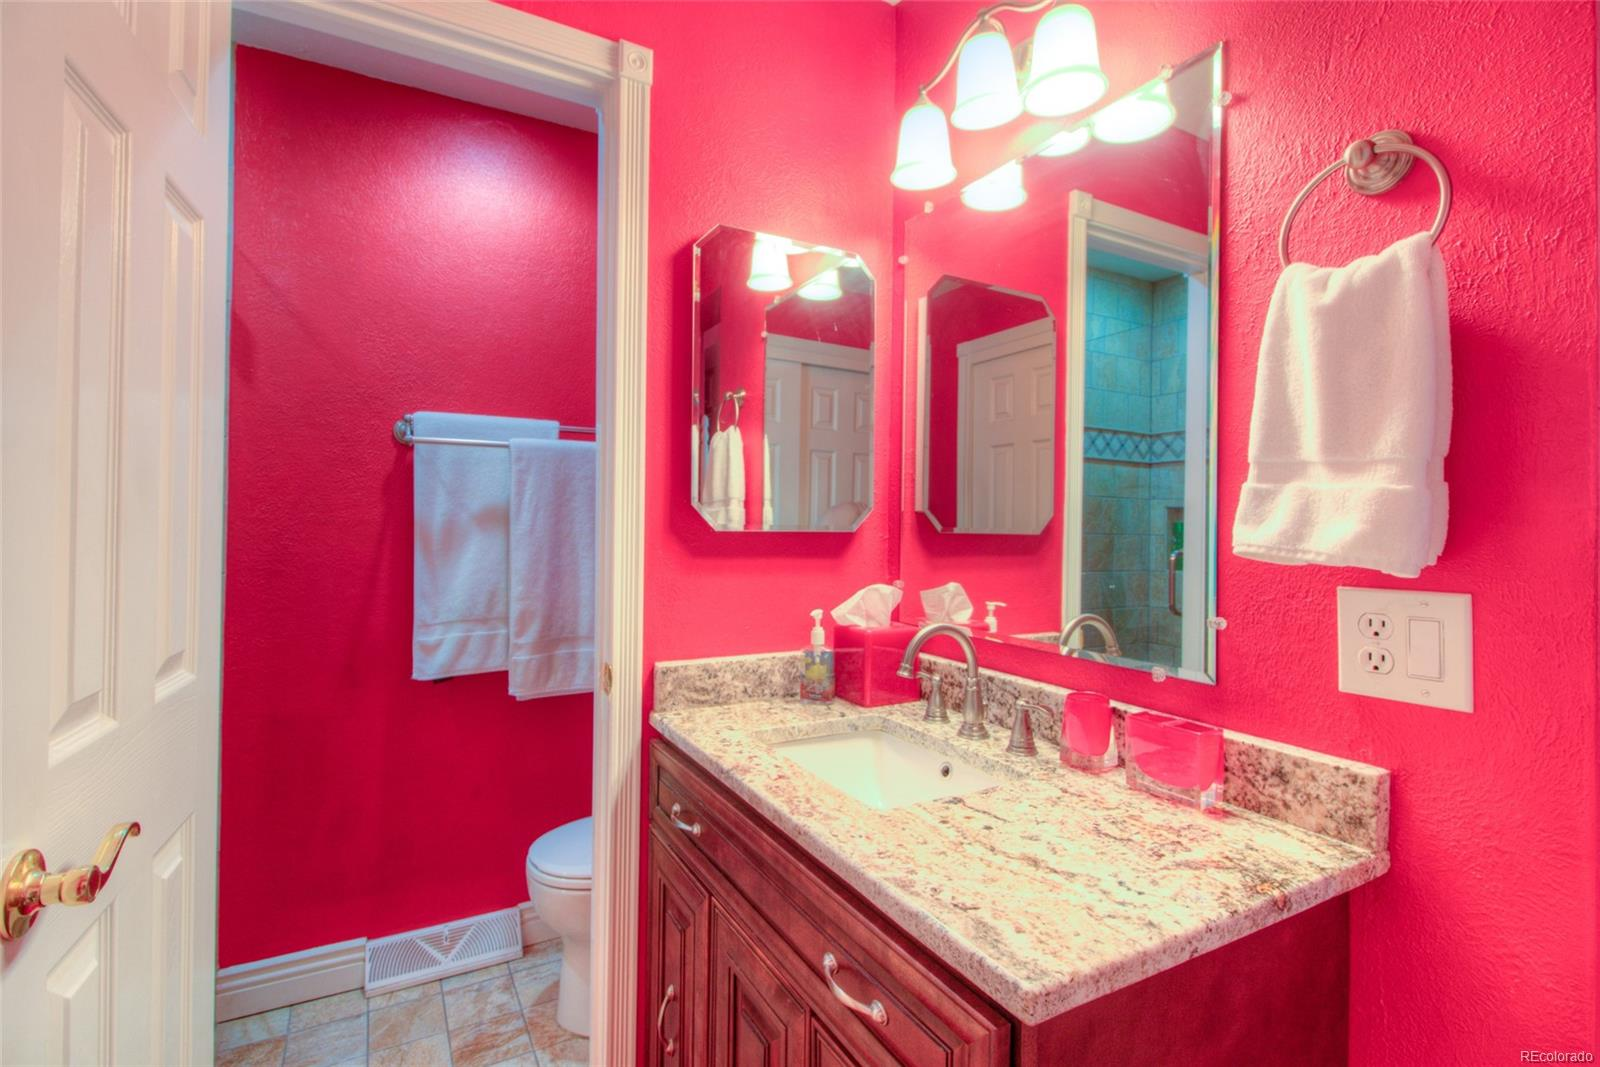 Remodeled Master Bathroom. Please don't let the paint color keep you from seeing this beautiful home.